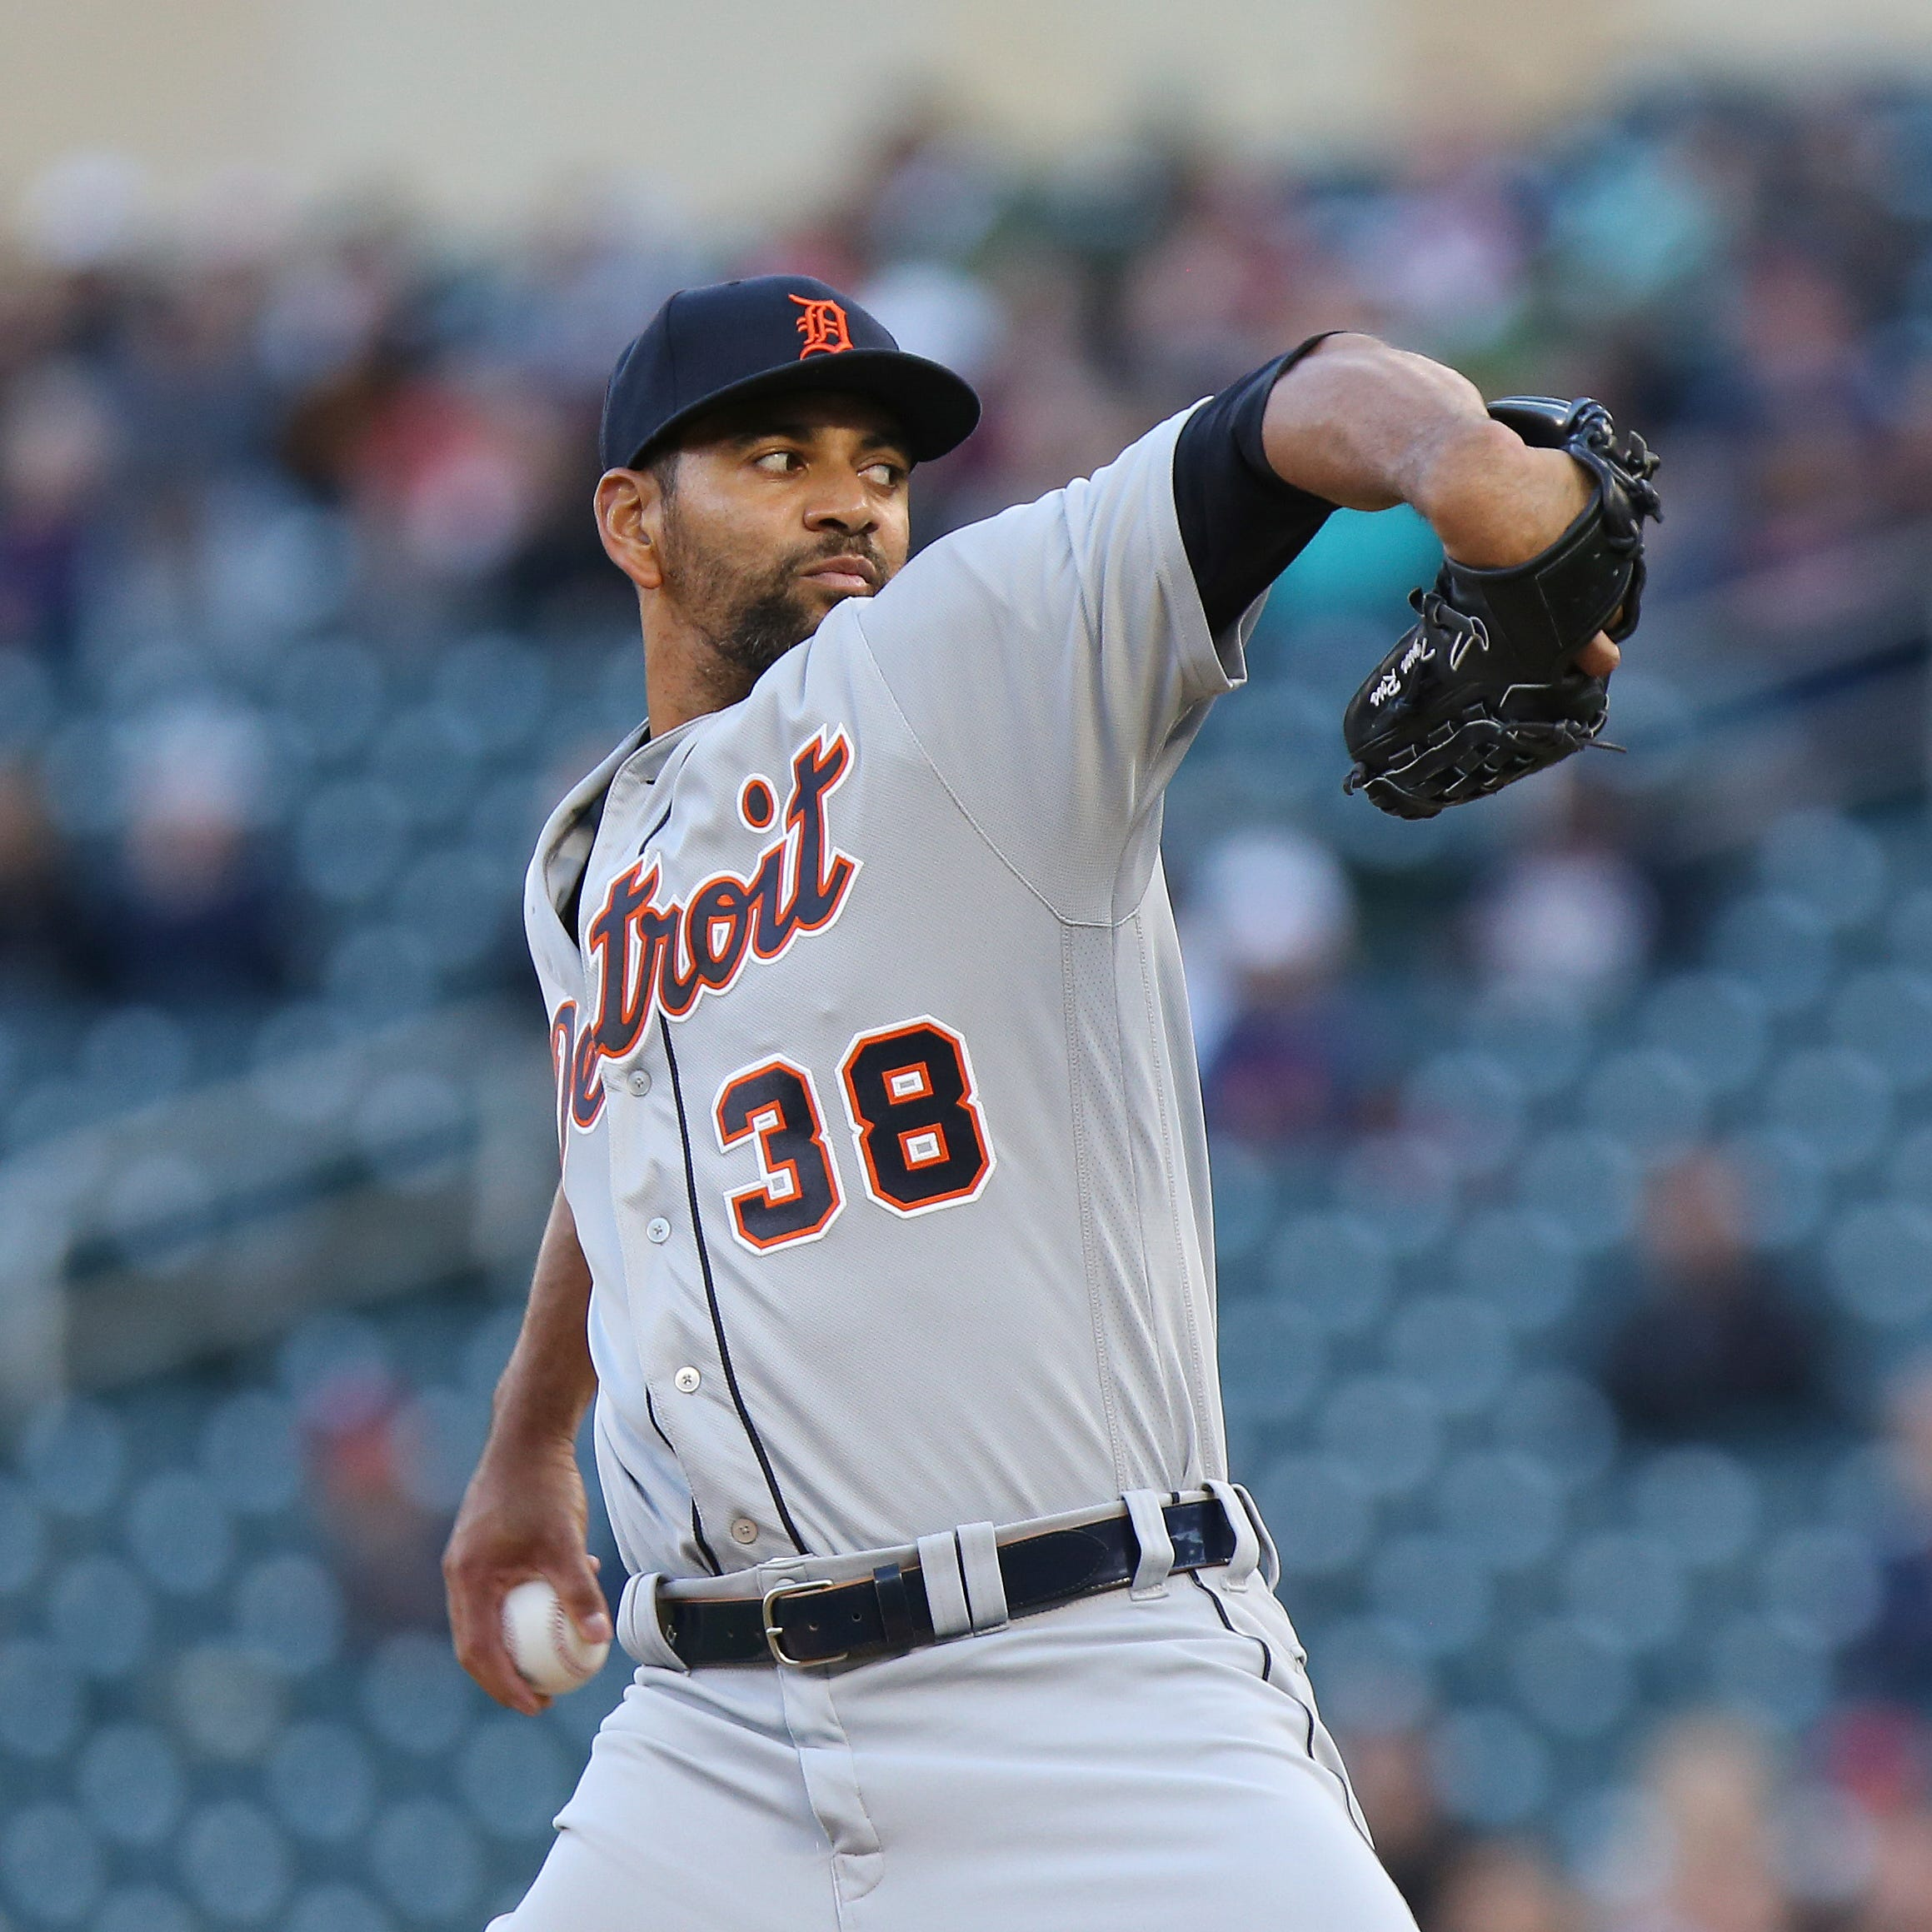 Another hit to Tigers rotation: Tyson Ross goes on IL with ulnar neuritis